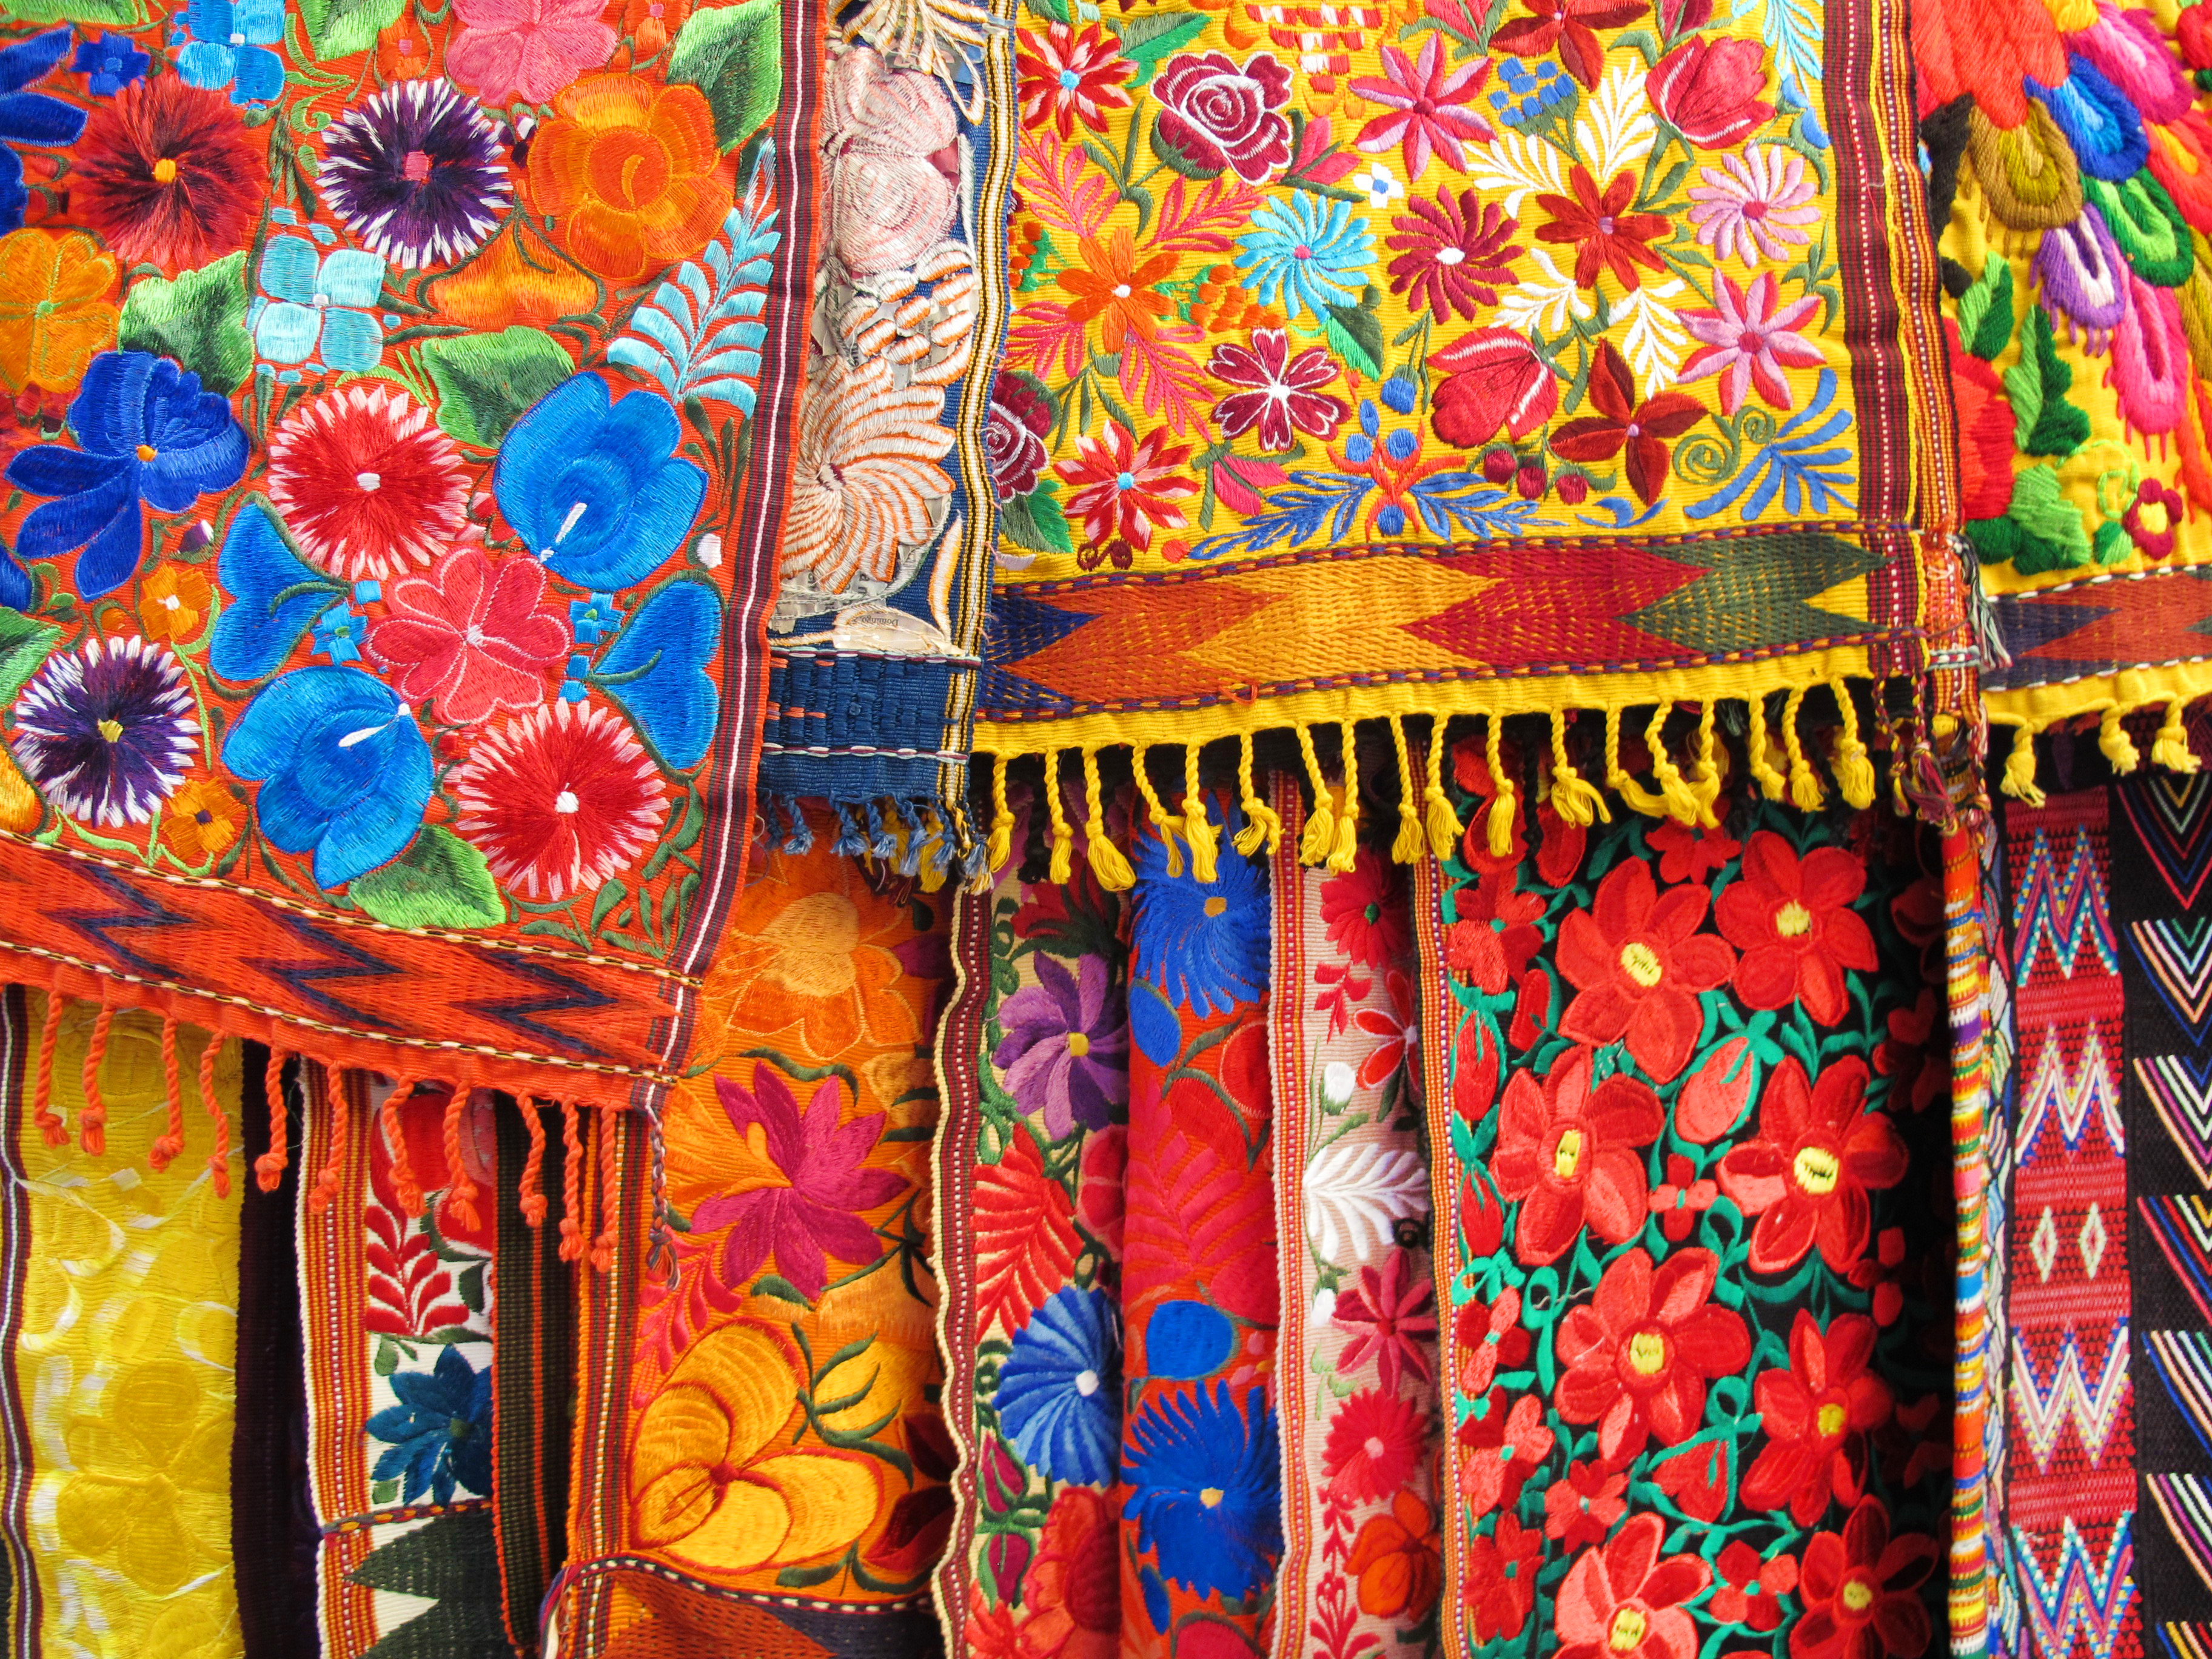 Colorful Embroidered Fabrics in an Outdoor Market in Mexico